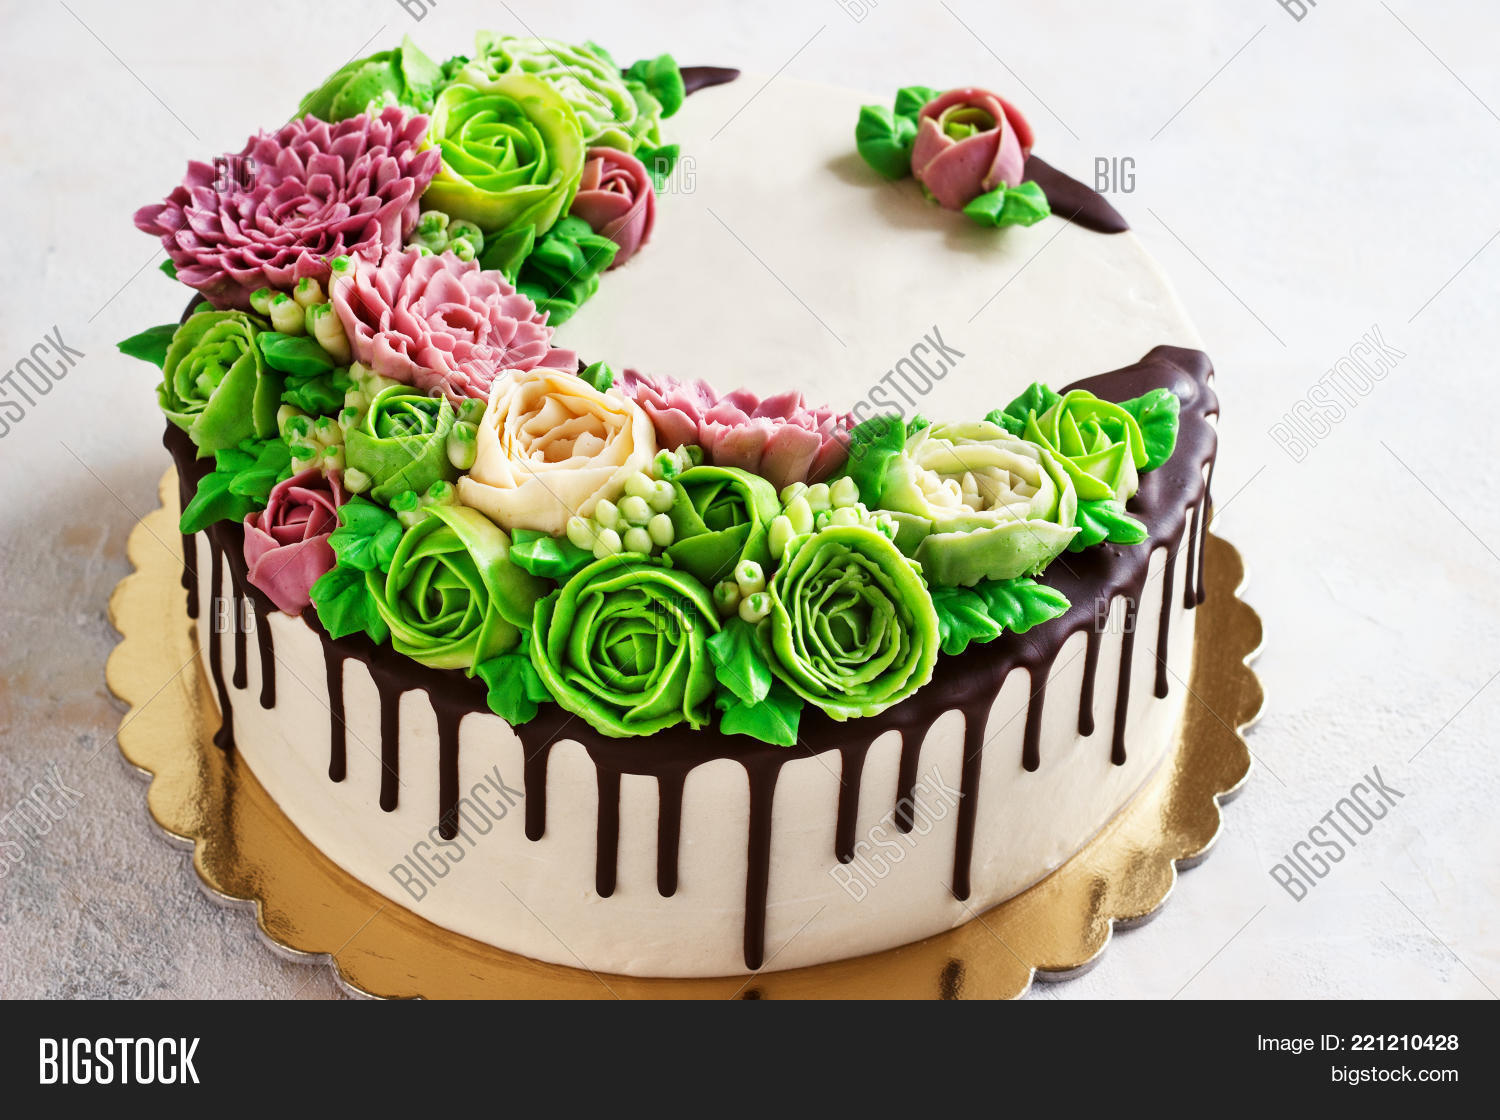 Birthday Cake With Flowers Rose On White Background Malaysian